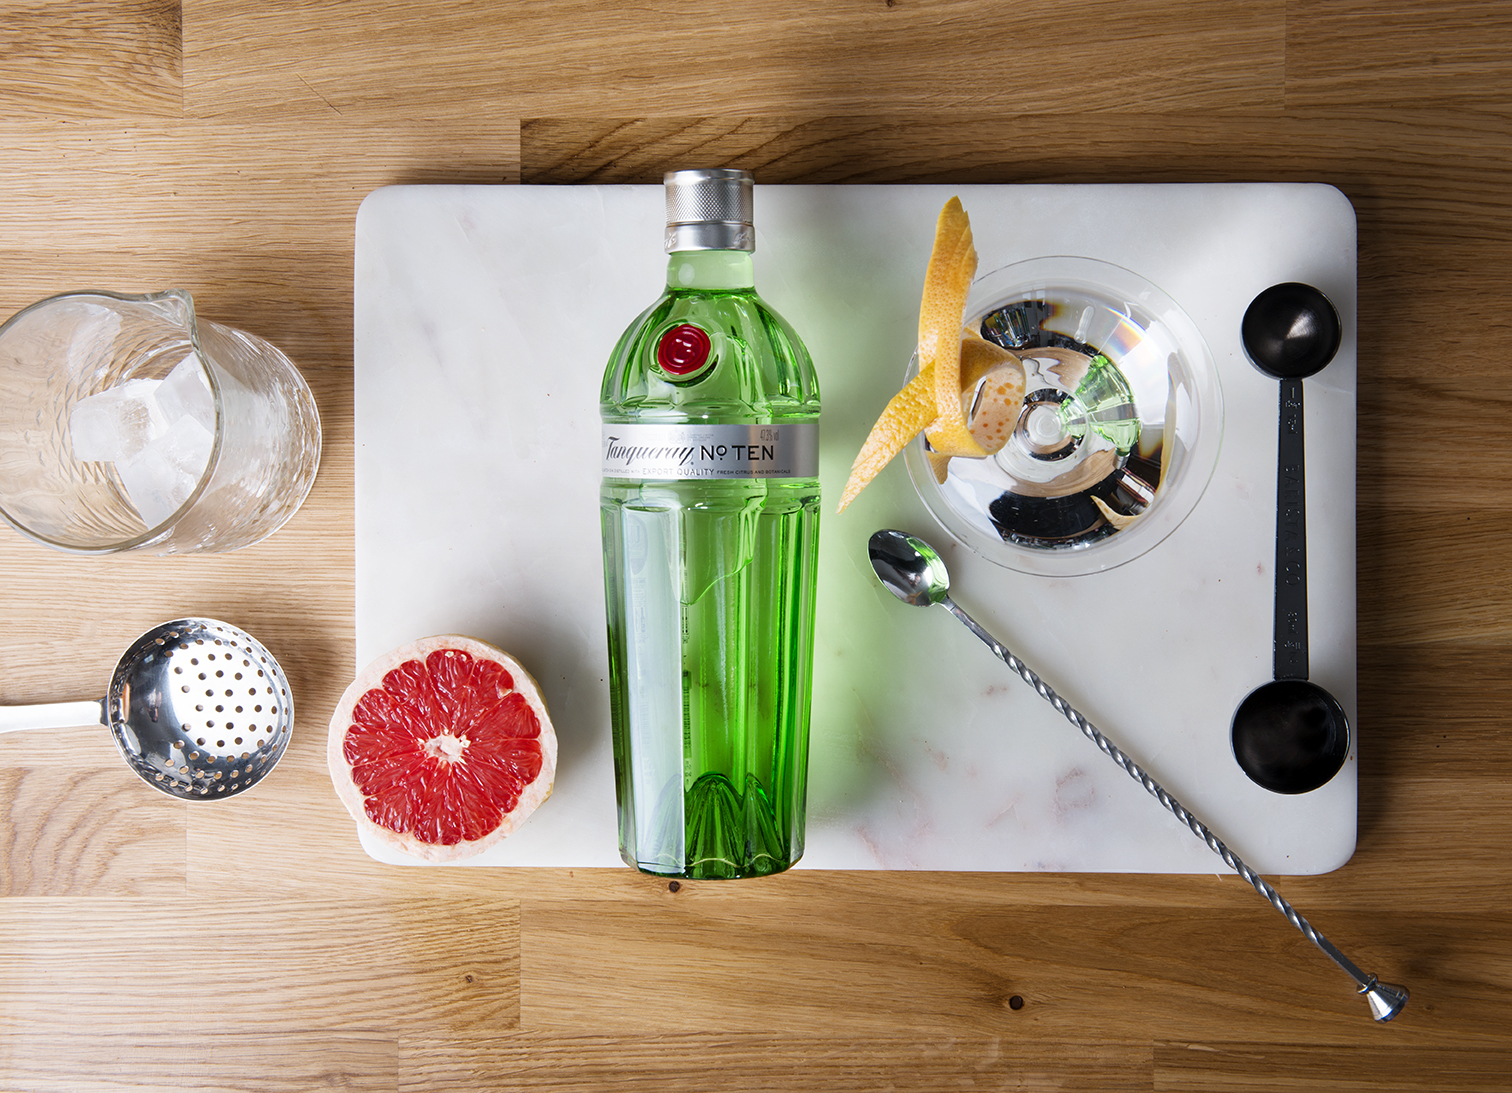 Ready To Tanqueray? photo